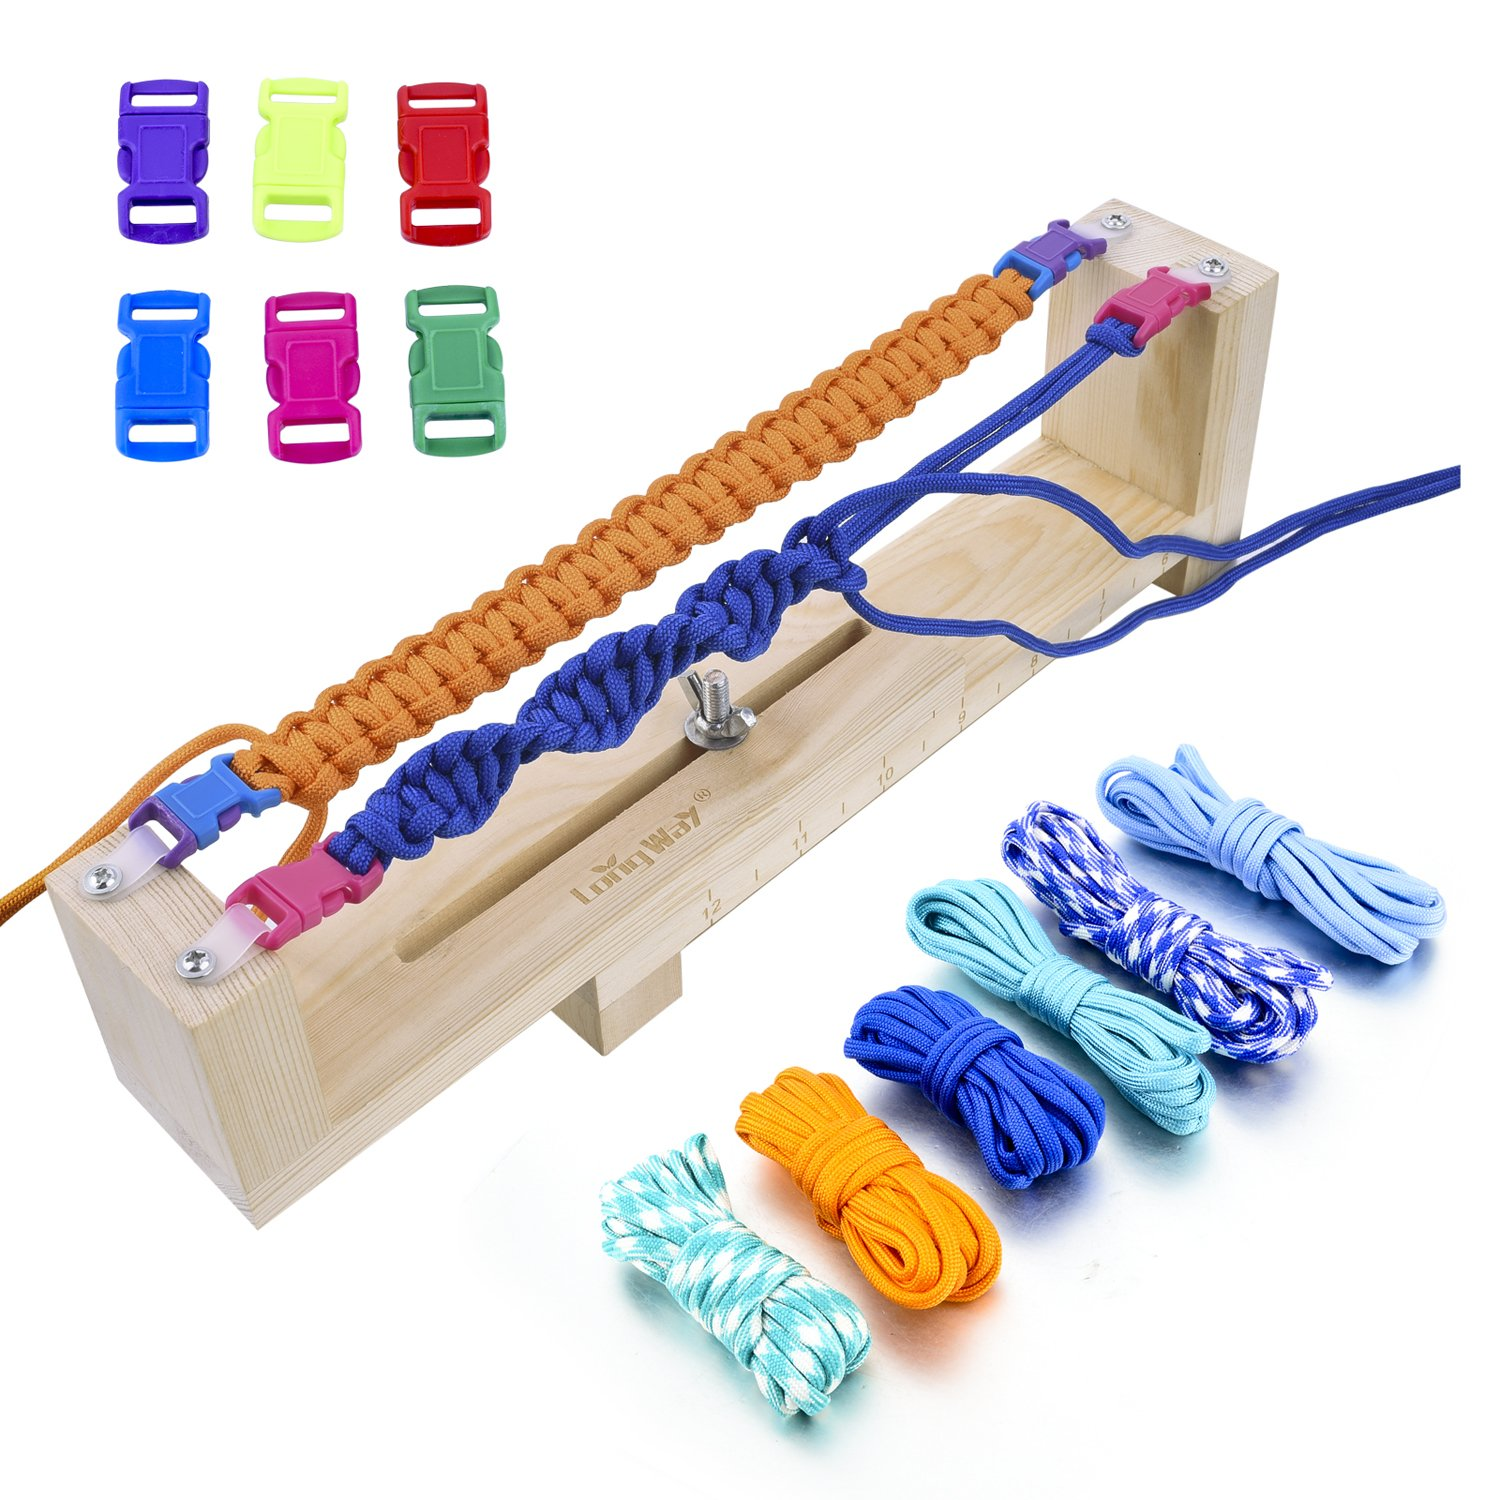 Long Way ® Jig Bracelet Maker with Parachute Cord, Wristband Maker - 6 parachute cords and 6 quick release buckles - Paracord Braiding Weaving DIY Craft Tool Kit - Heavy Duty Buckles SBM160001MT1